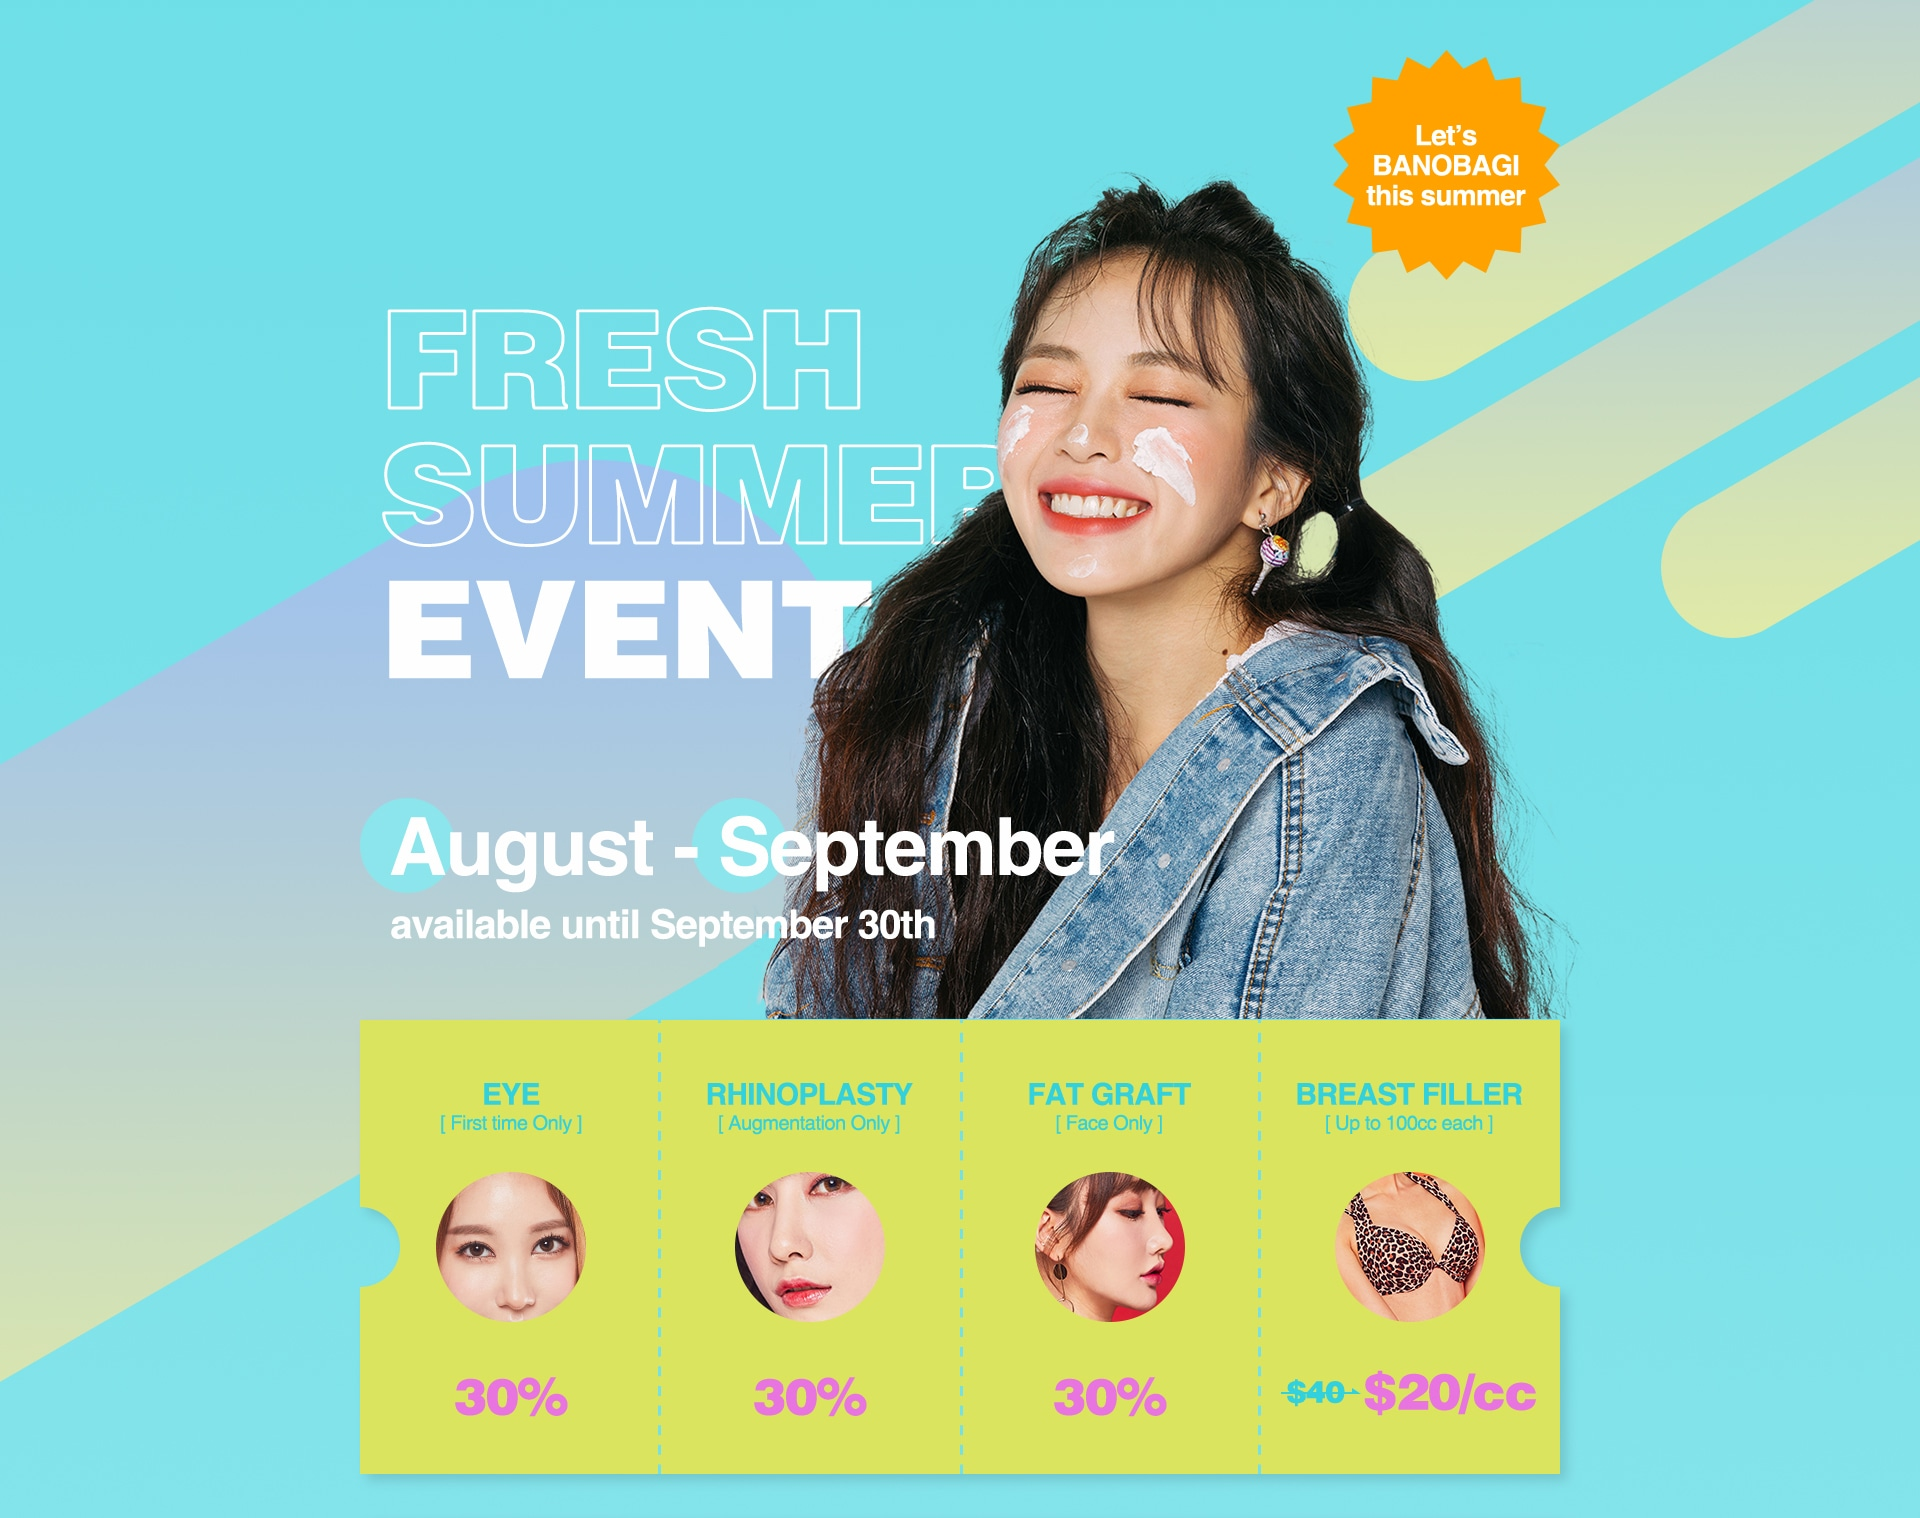 FRESH SUMMER EVENT August-September available until September 30th